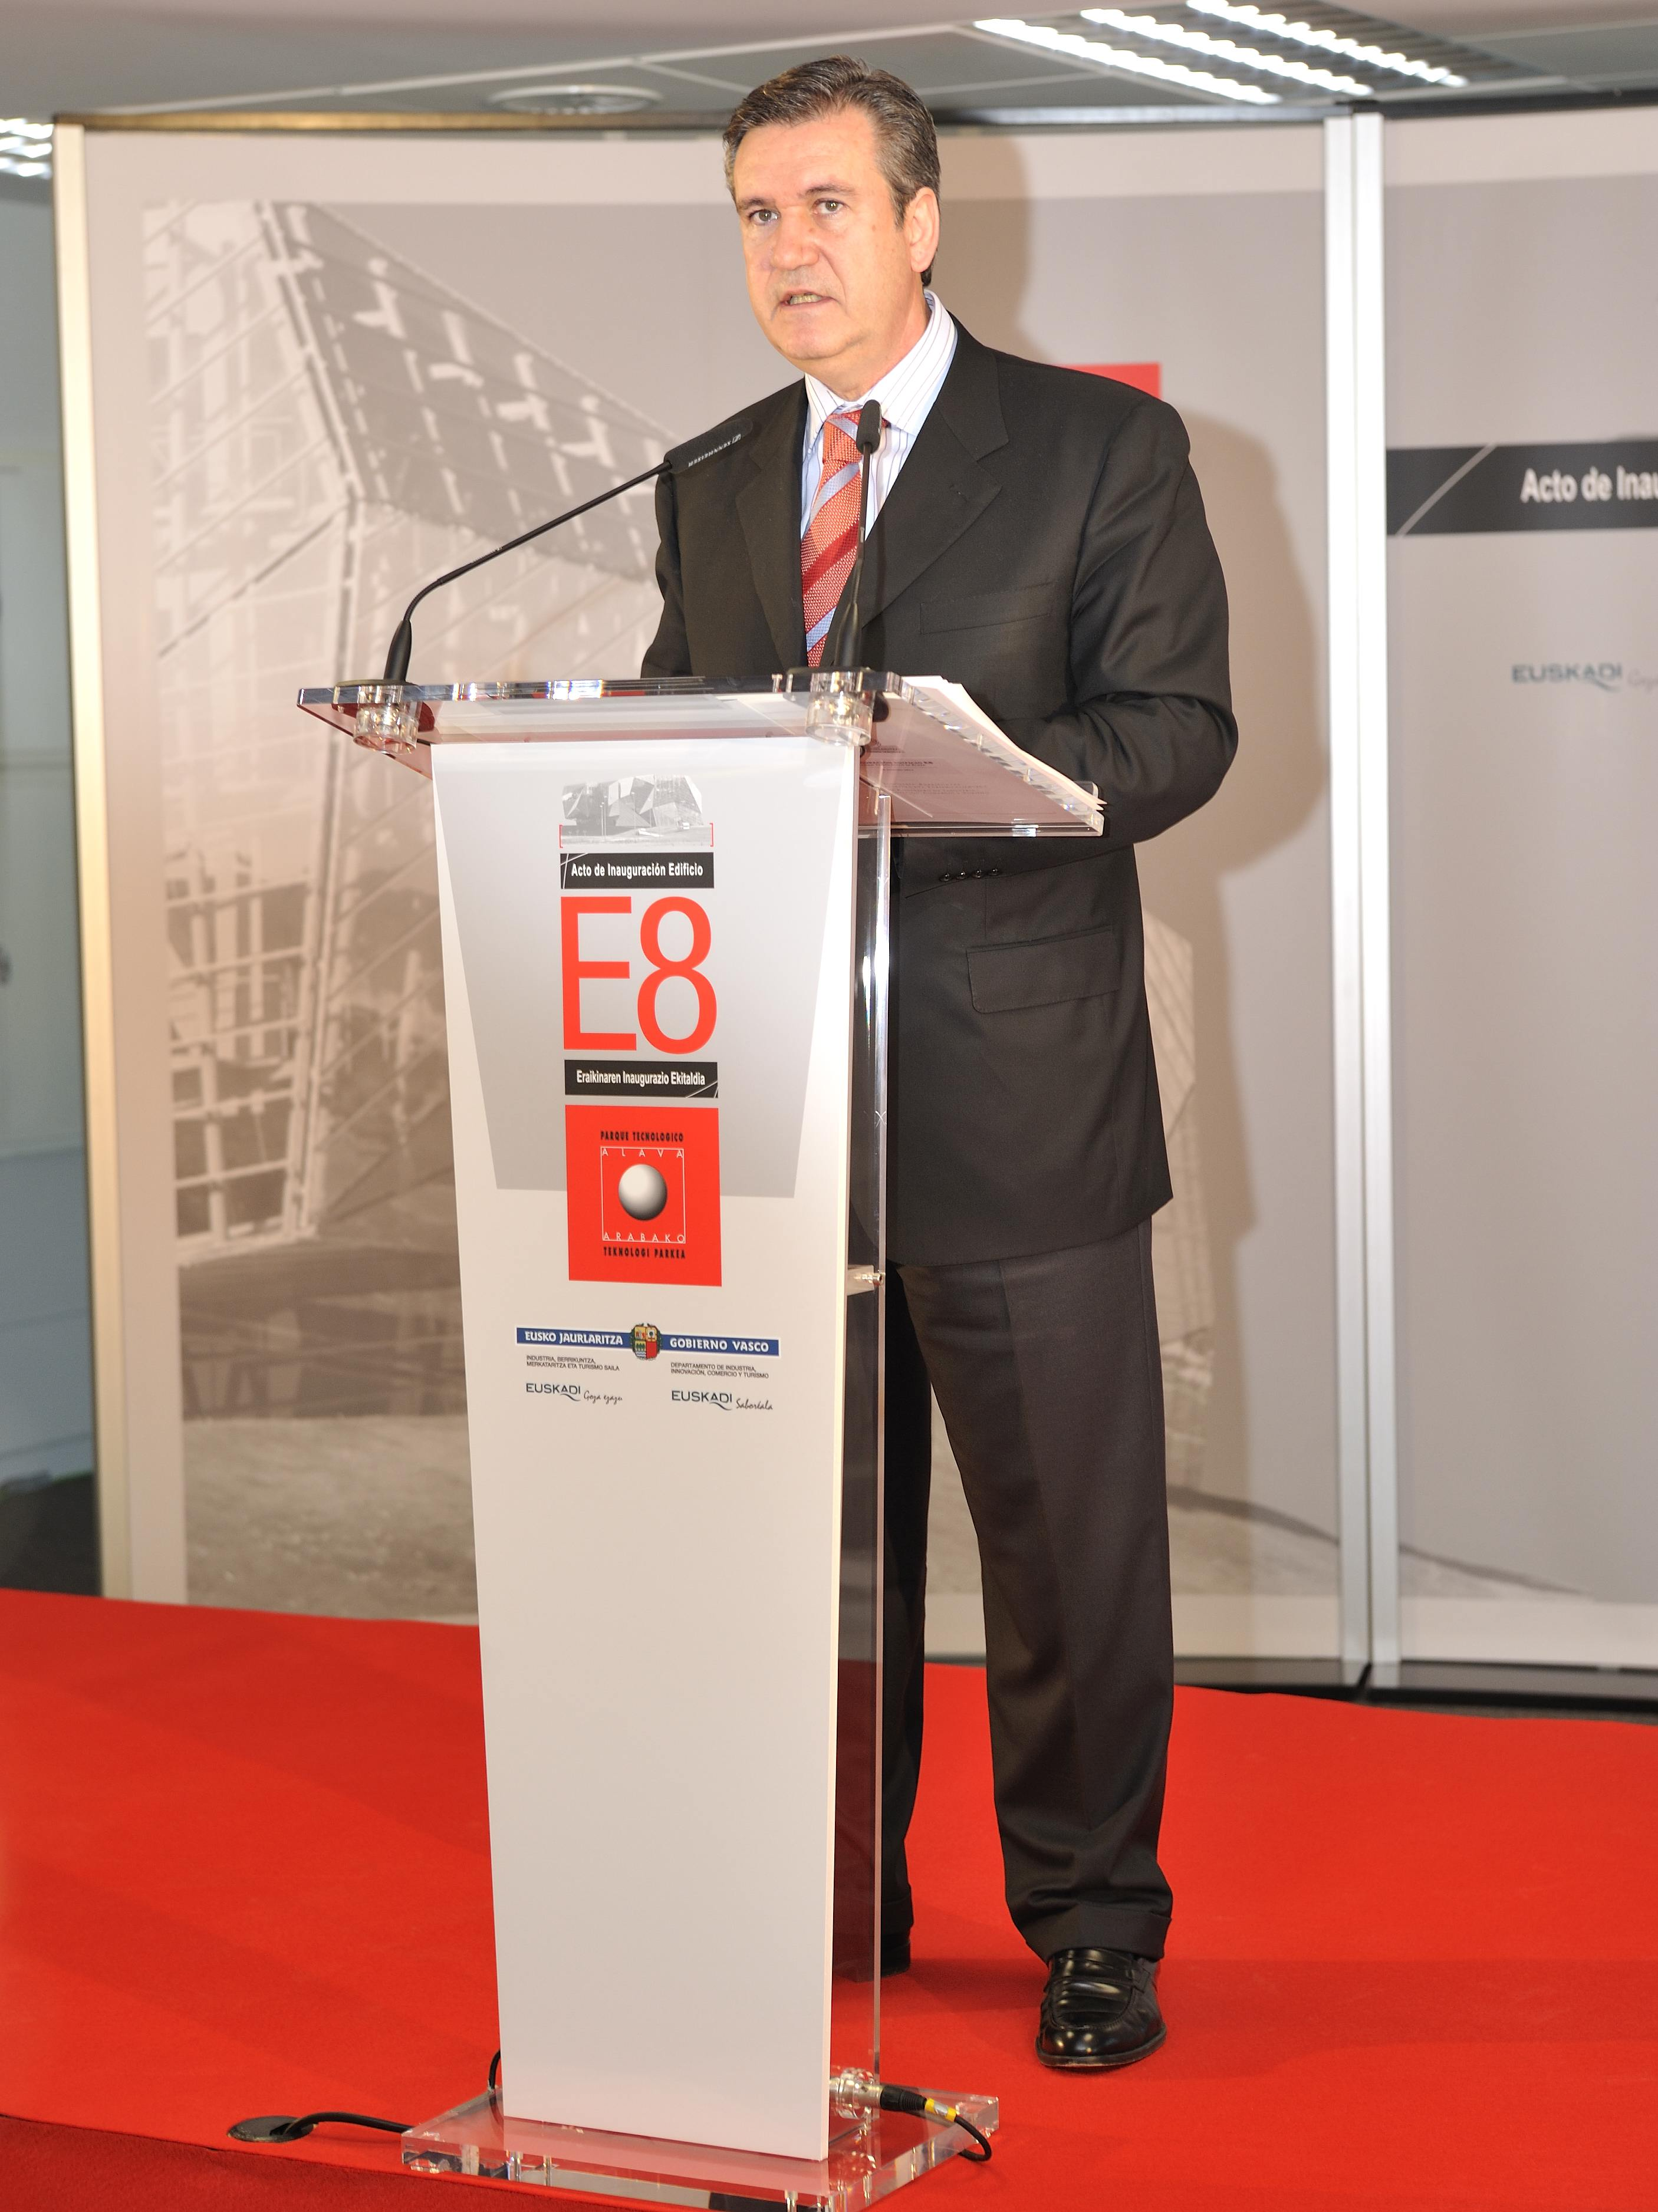 E8, the new symbol for the Technology Park of Alava